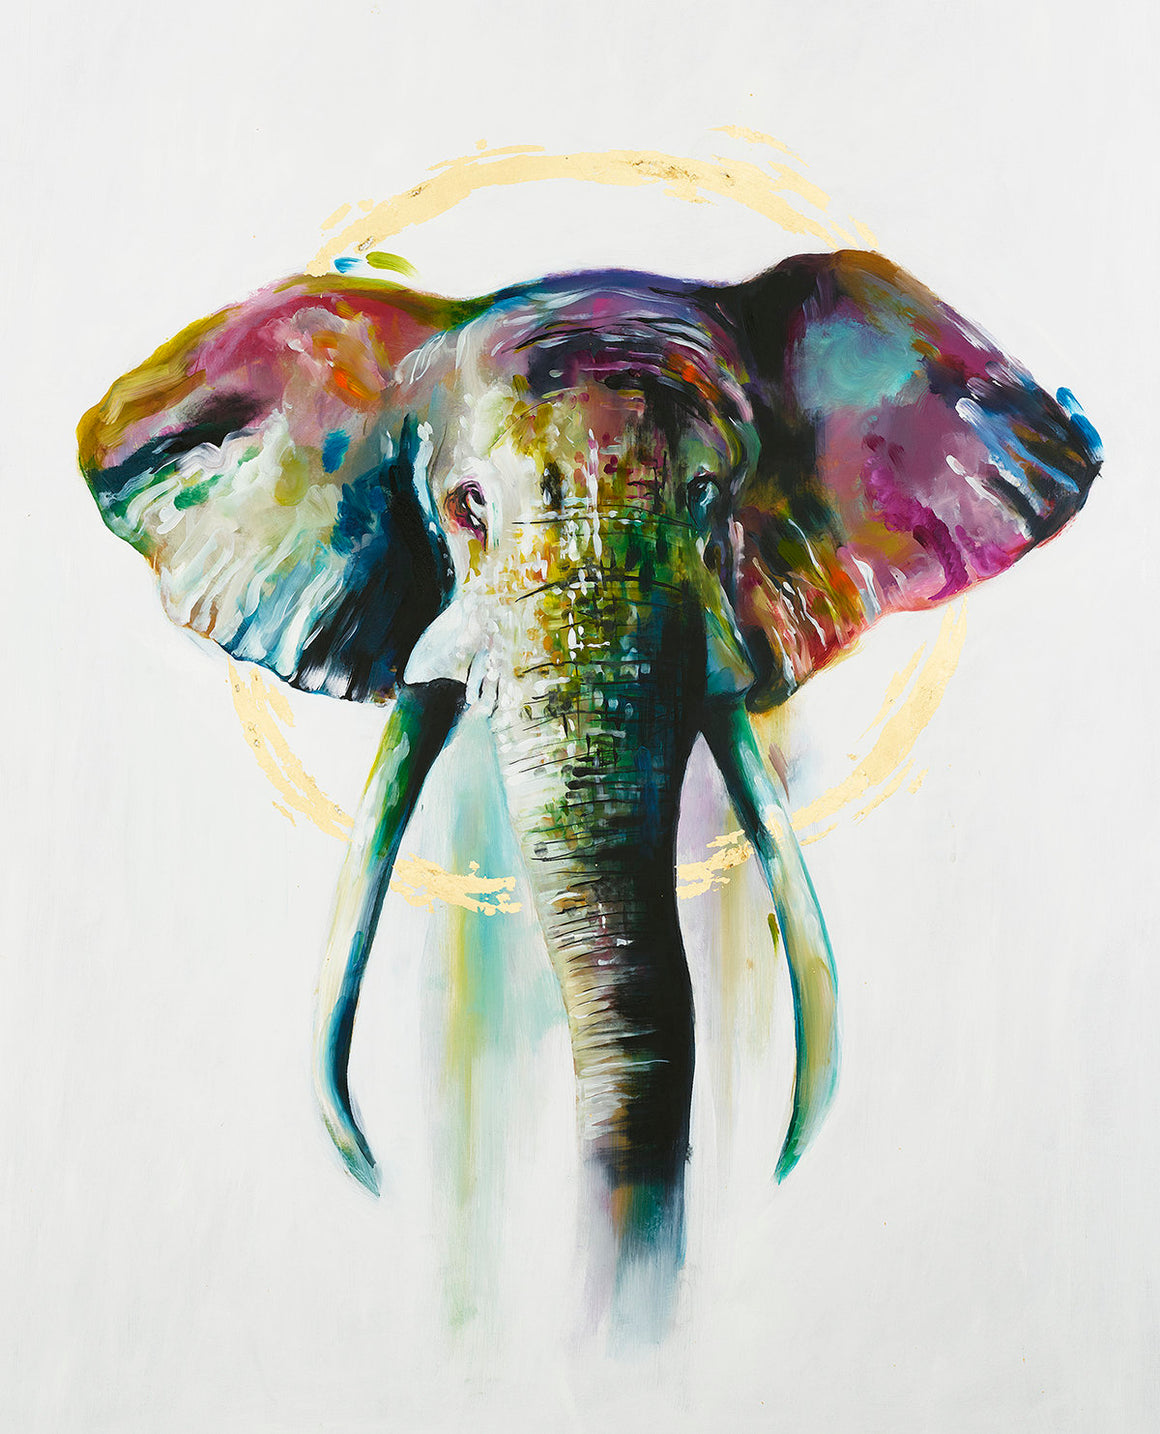 """Gilt"" by Katy Jade Dobson (limited edition print)"